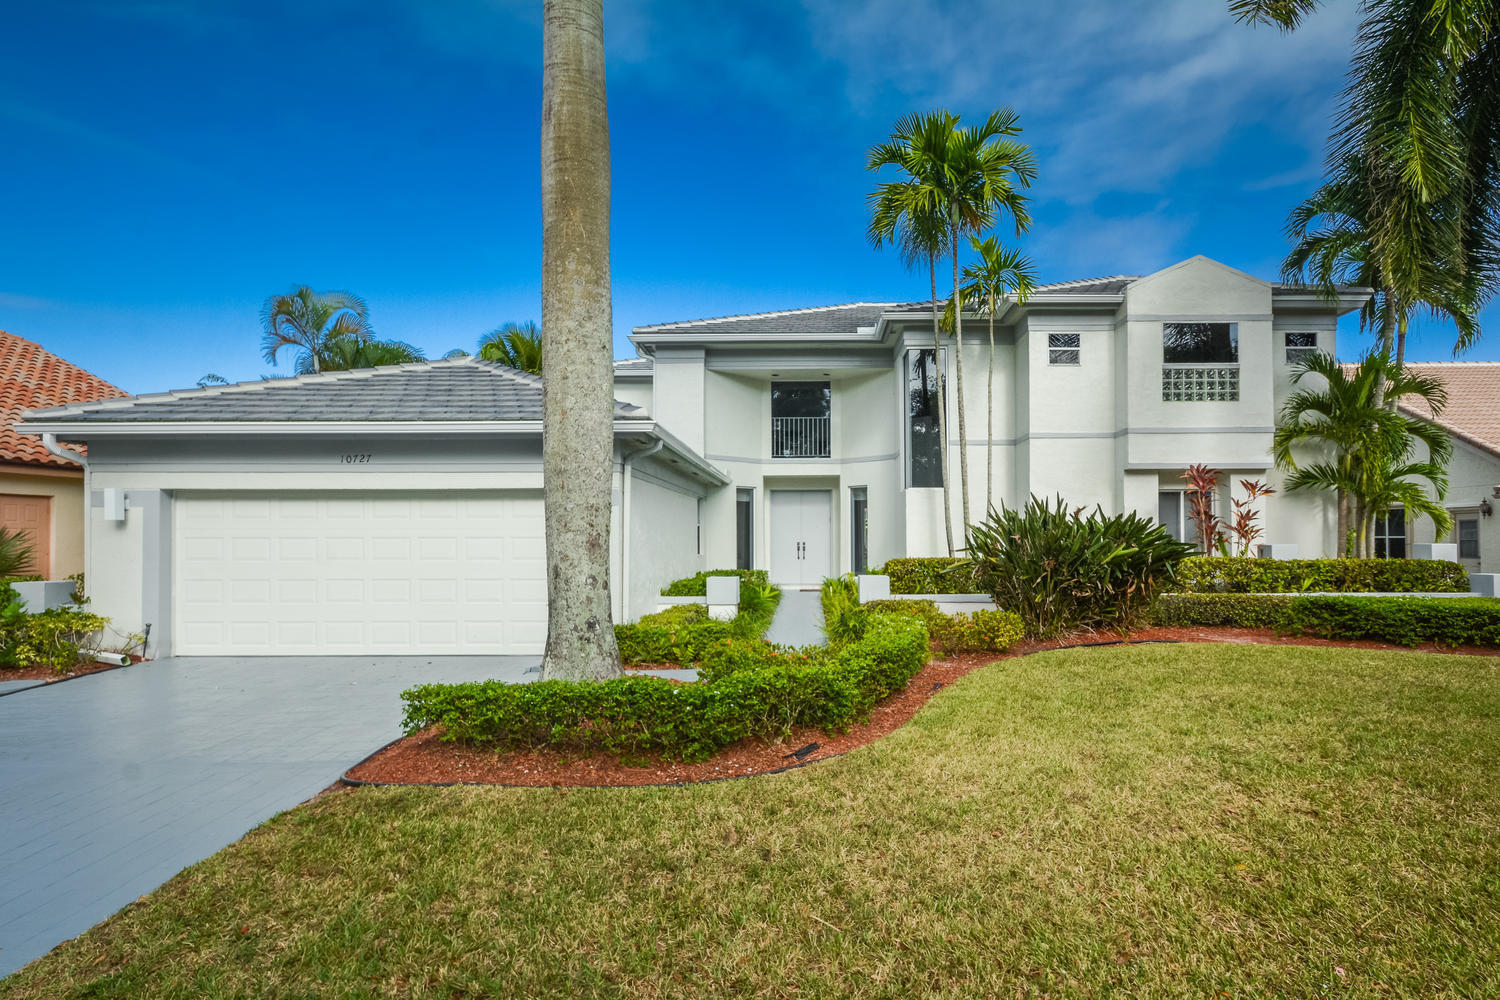 Home for sale in Mission Bay/the Isle Boca Raton Florida